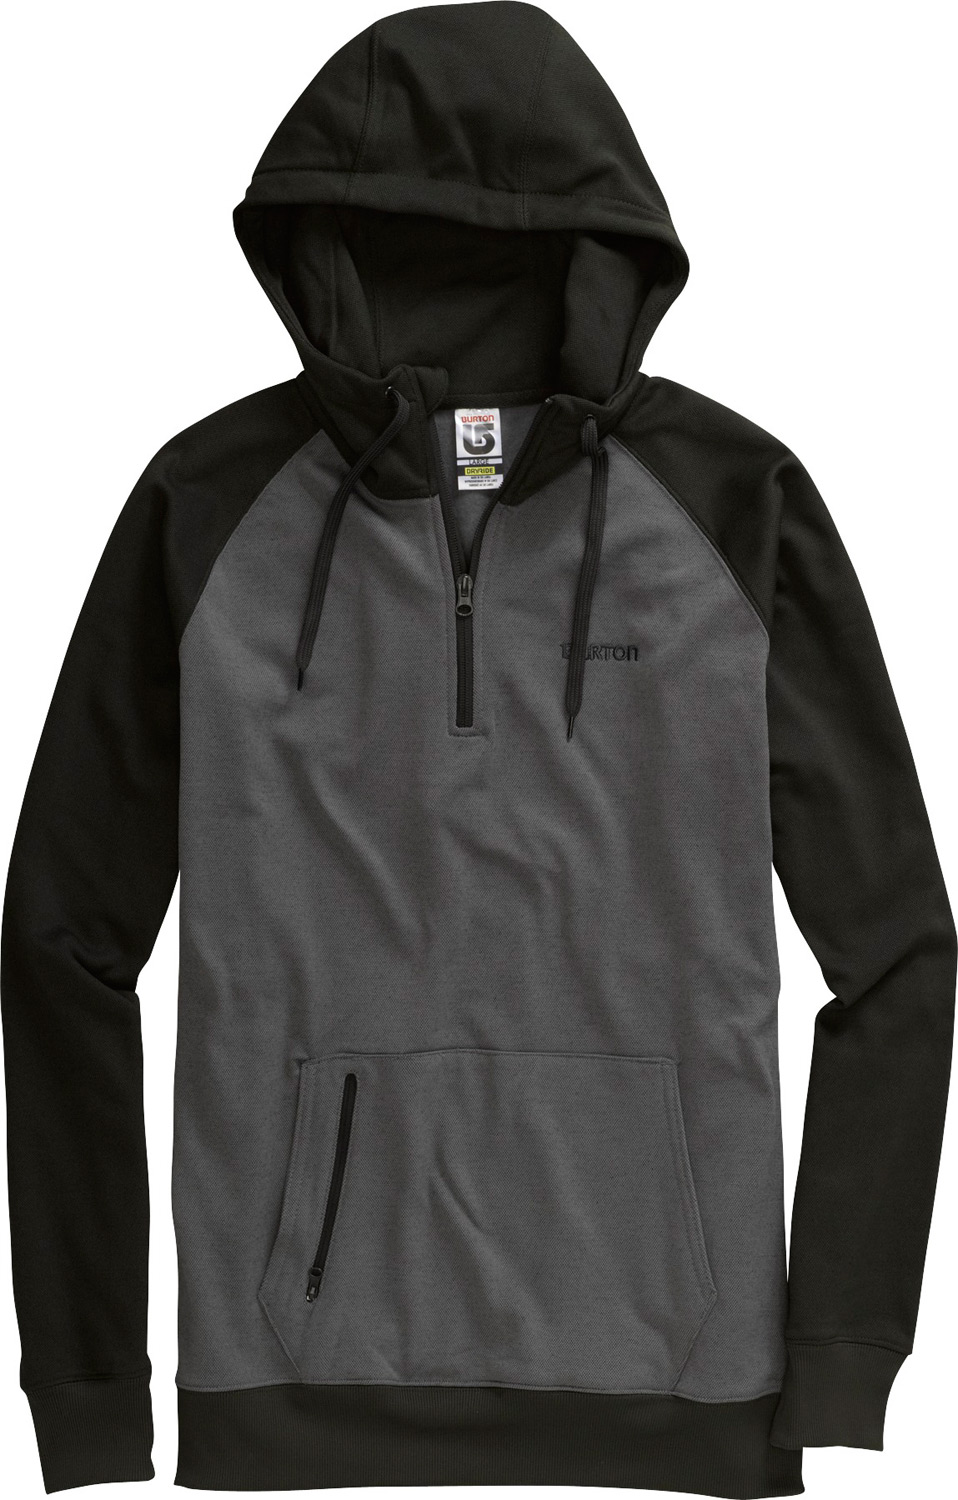 Snowboard Quarter zip that's way nicer than the schwag your buddy's packing.Key Features of the Burton Totem Hoodie: DRYRIDE Thermex Oxford Pique Team Fit Hood with Drawstring Closure Kangaroo Handwarmer Pocket w/Zippered Entry 1/4 Zip Venting - $51.95